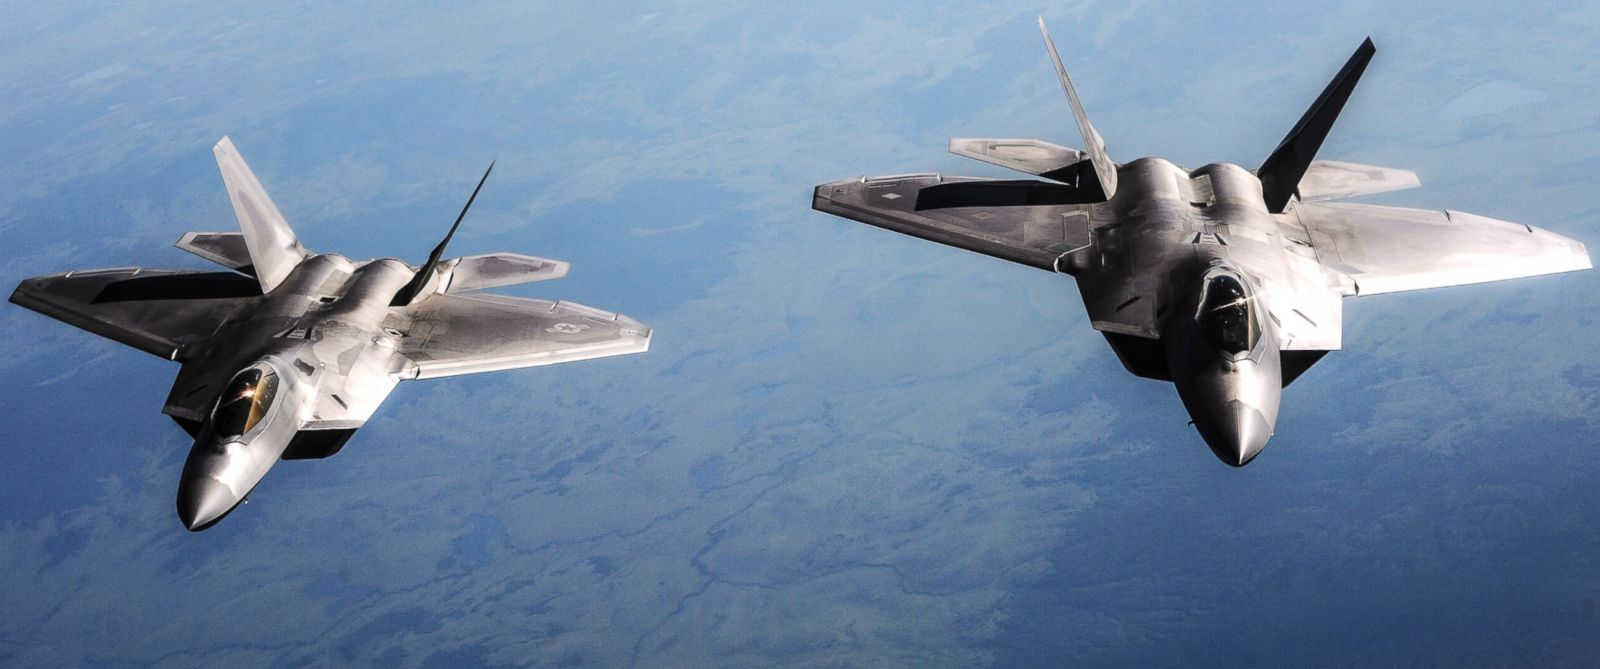 PHOTO: Two U.S. Air Force F-22 Raptor aircraft fly behind a KC-135 Stratotanker aircraft, not shown, during Red Flag-Alaska 13-3 over the Joint Pacific Alaska Range Complex Aug. 14, 2013.